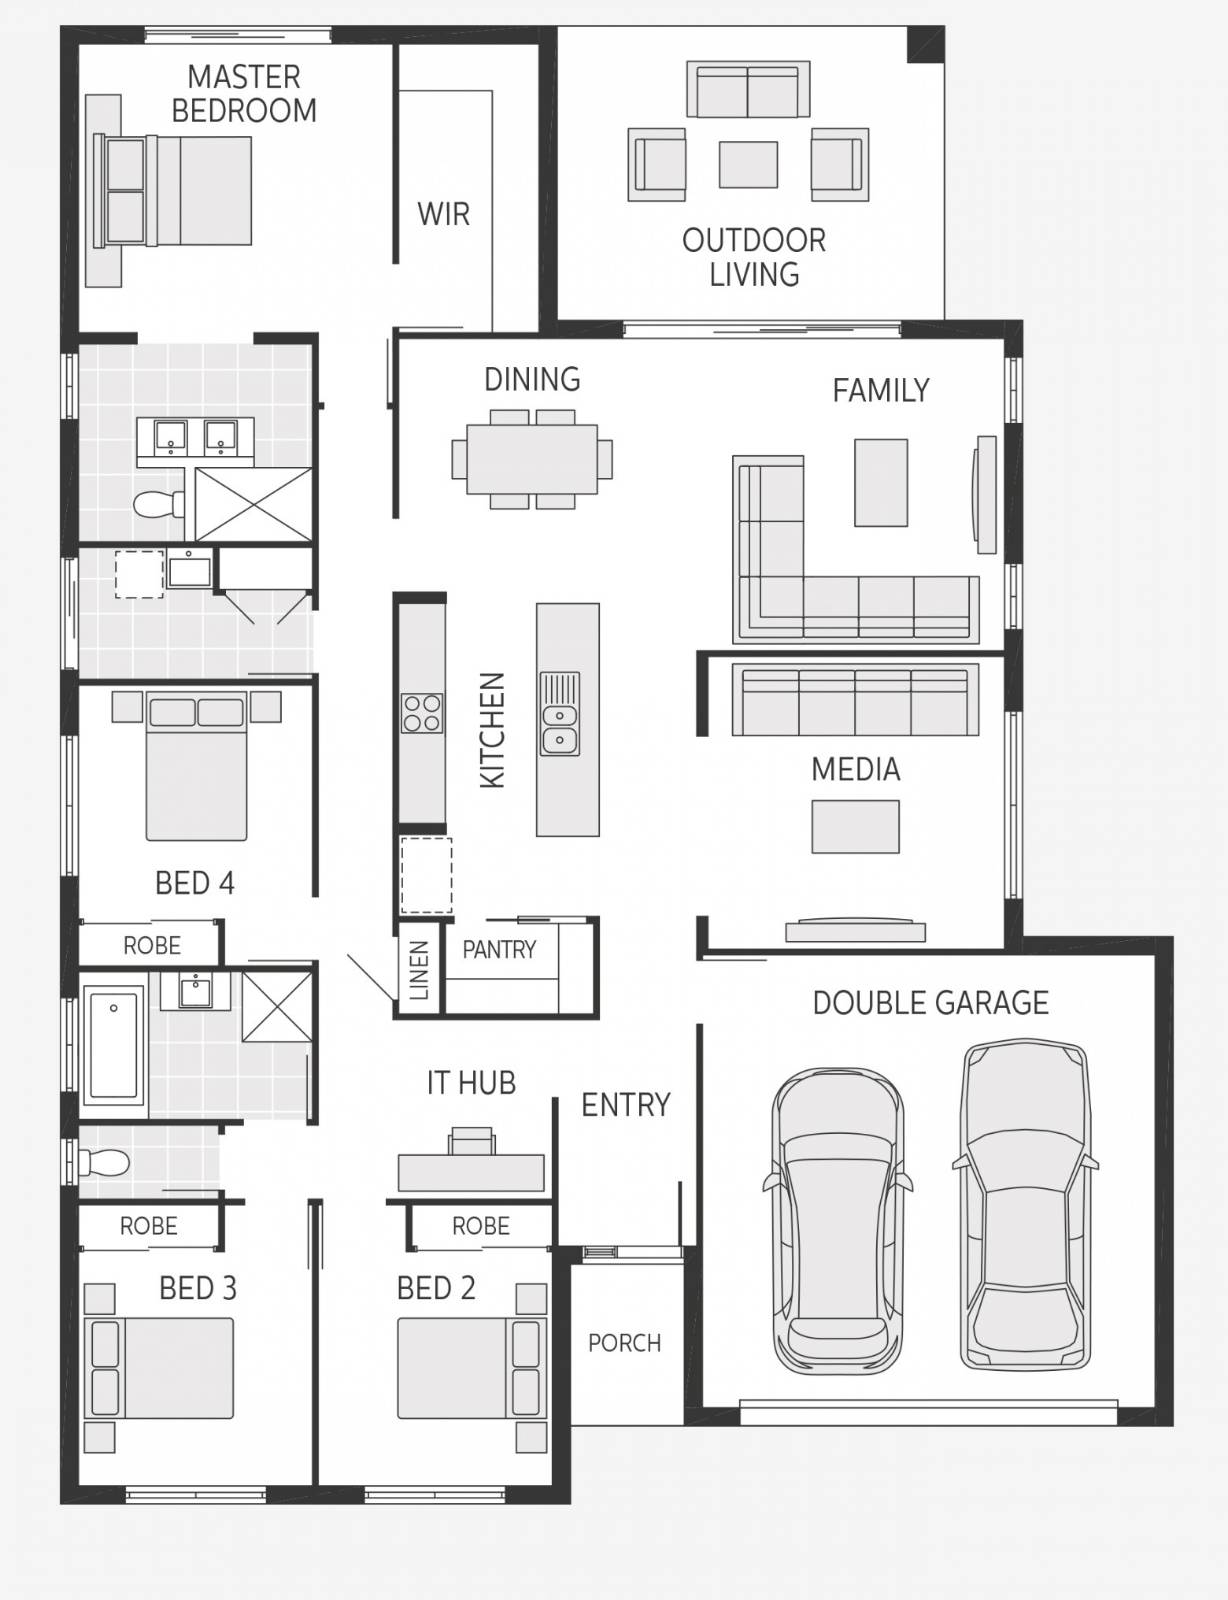 View Topic Coral Homes Lisbon 25 Hervey Bay Qld Slab Home Electrical Wiring Diagrams Like Add A Comment Pin To Ideaboard Share